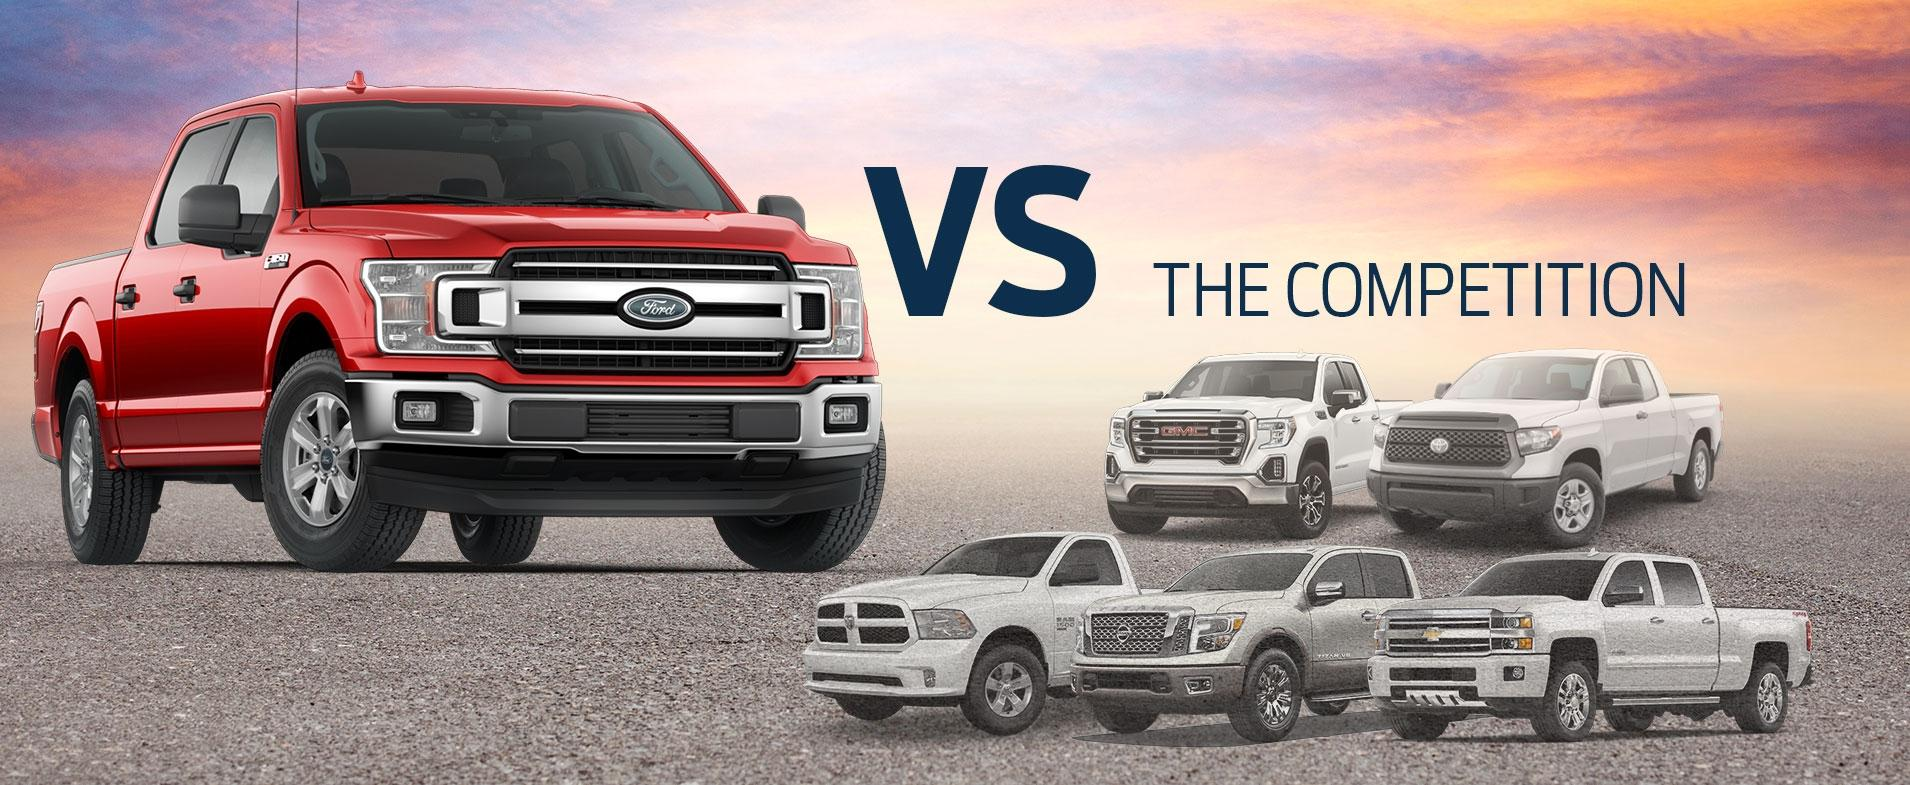 F-150 vs Competition